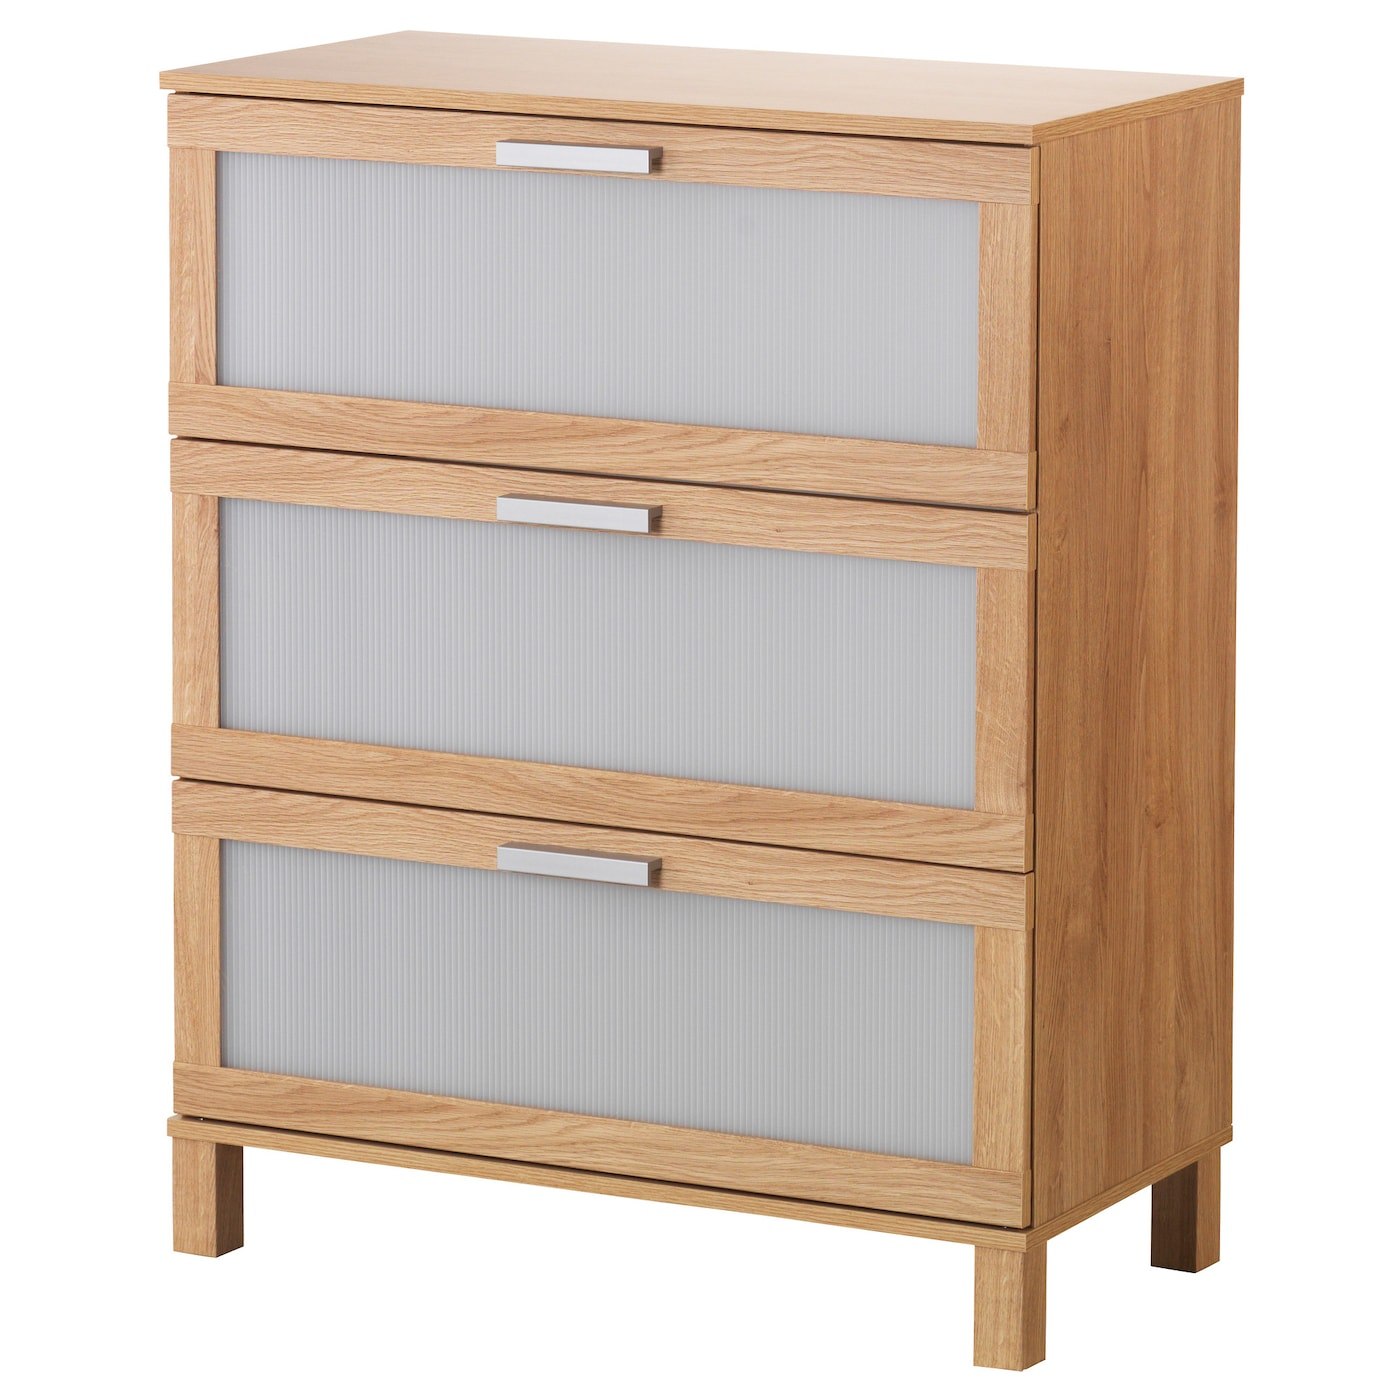 Austmarka chest of drawers oak effect cm ikea